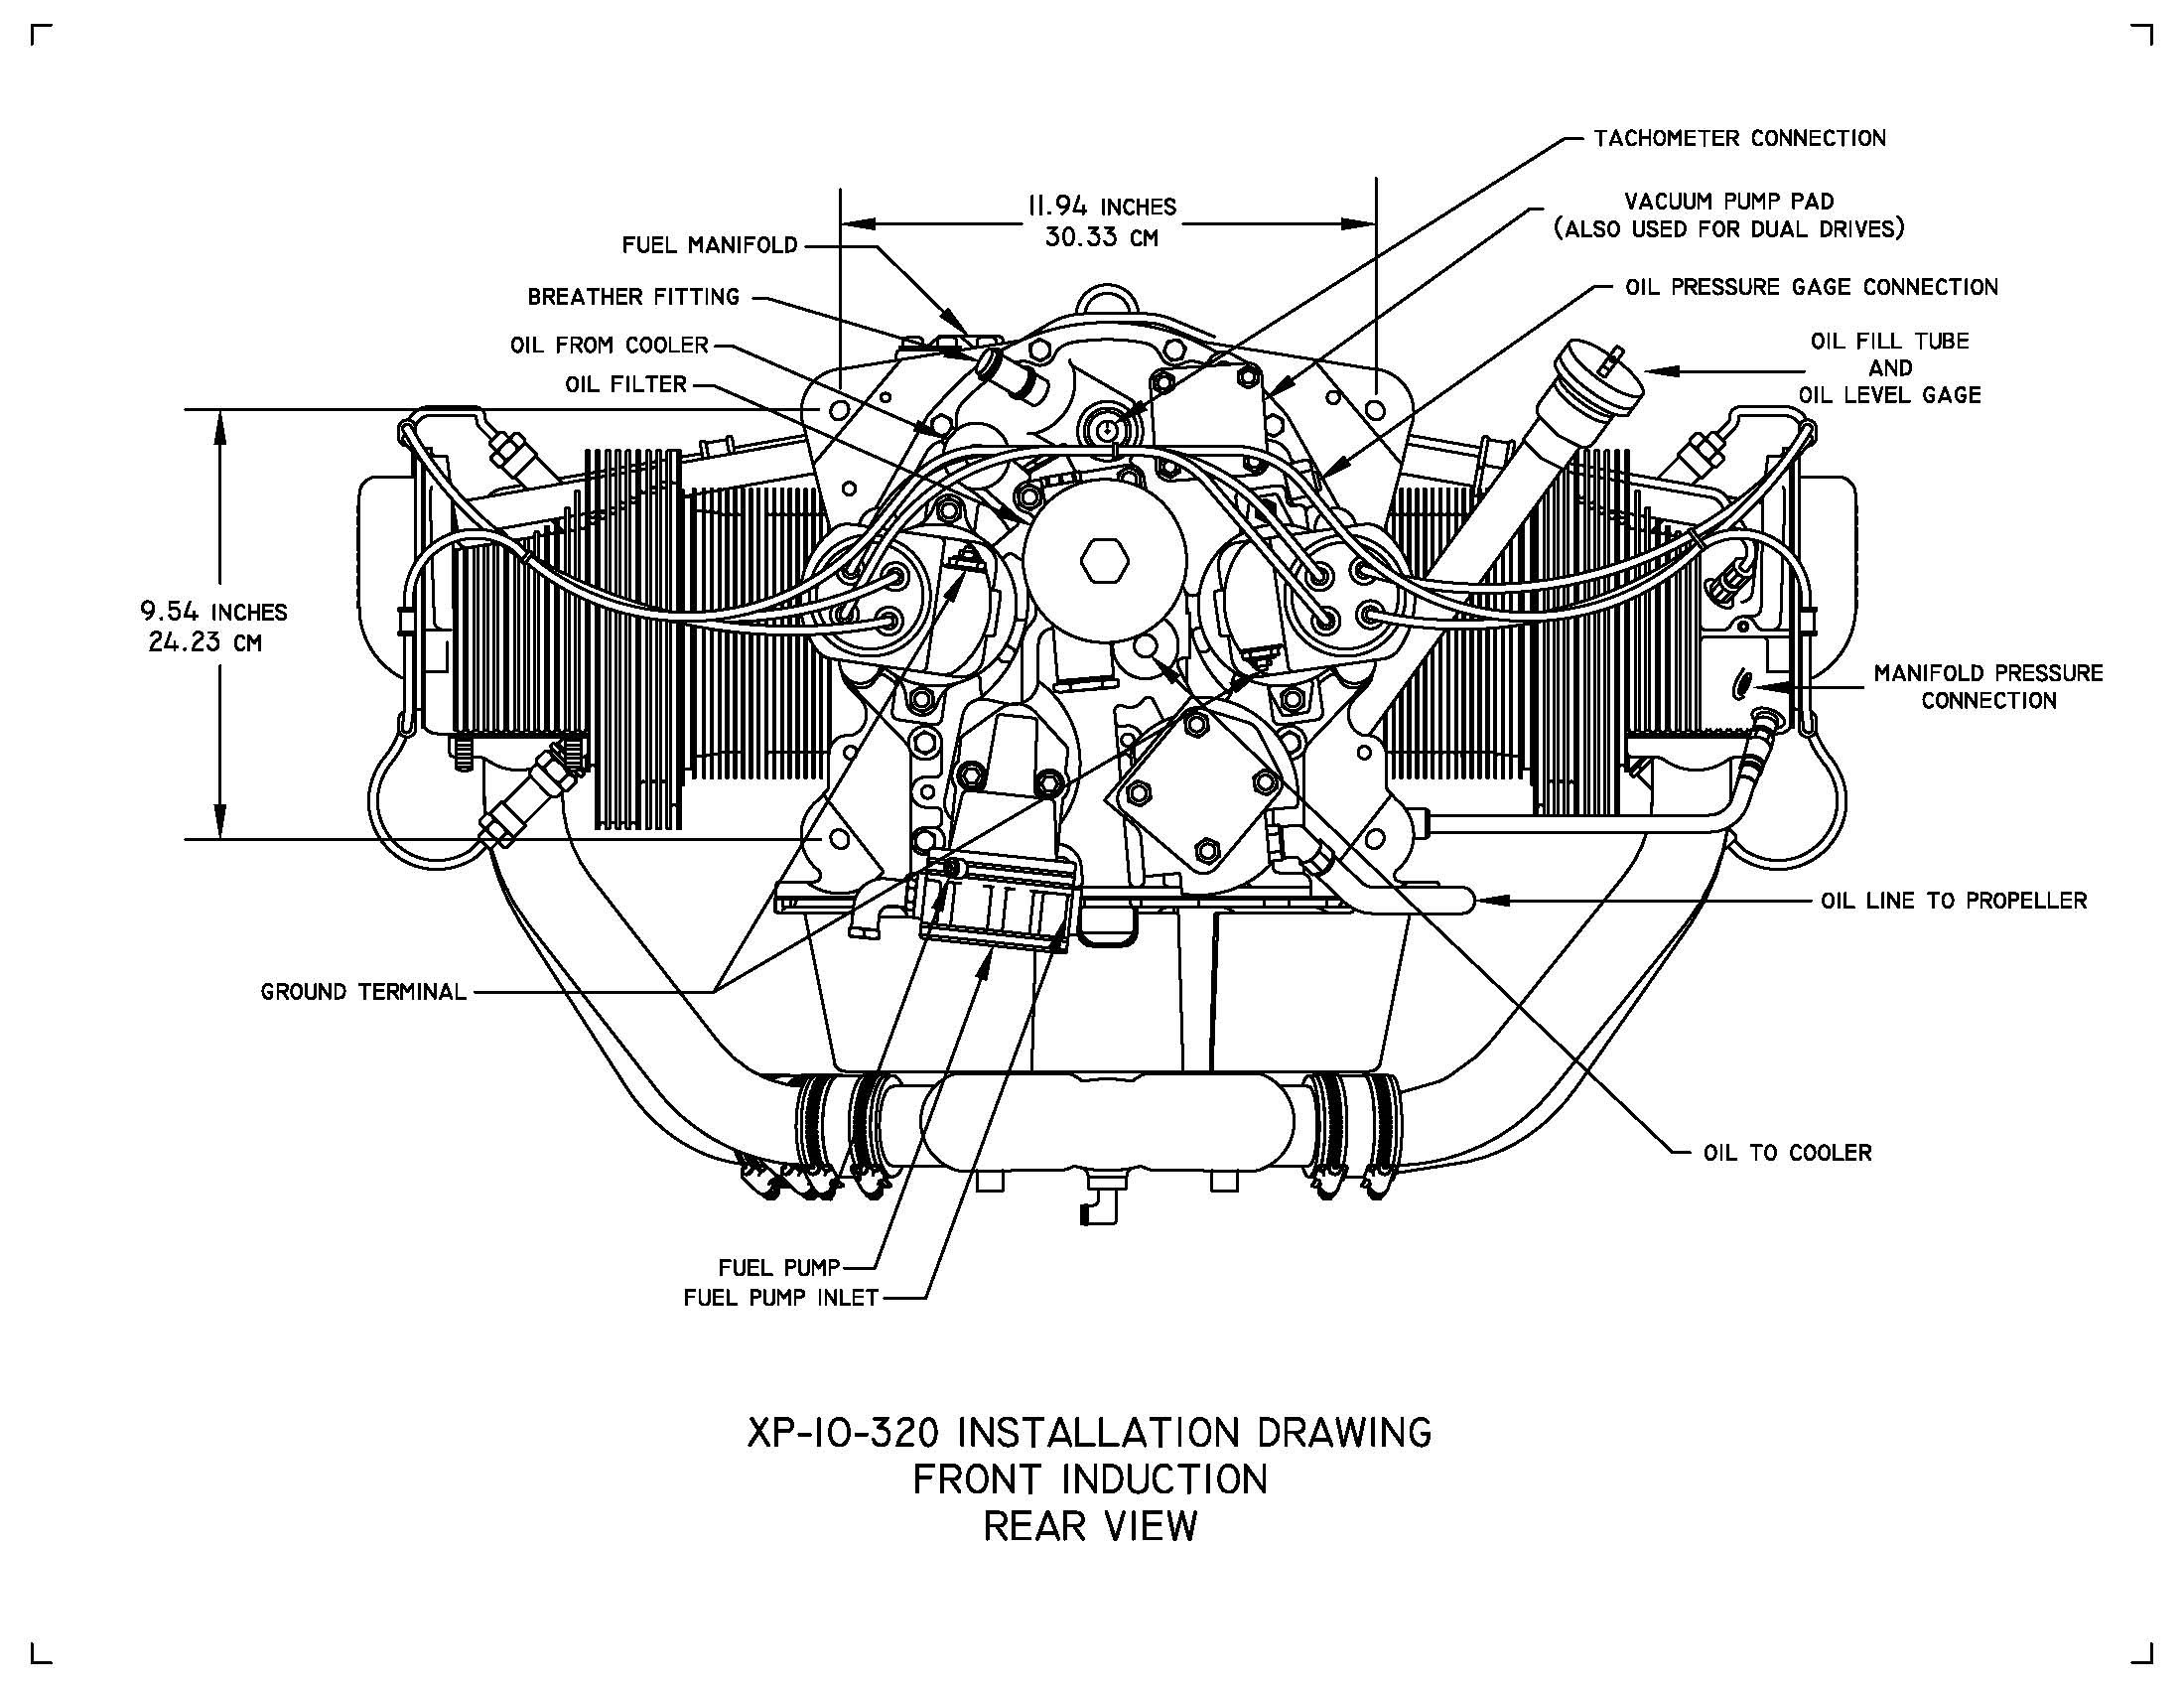 Superior XP-320 Engine